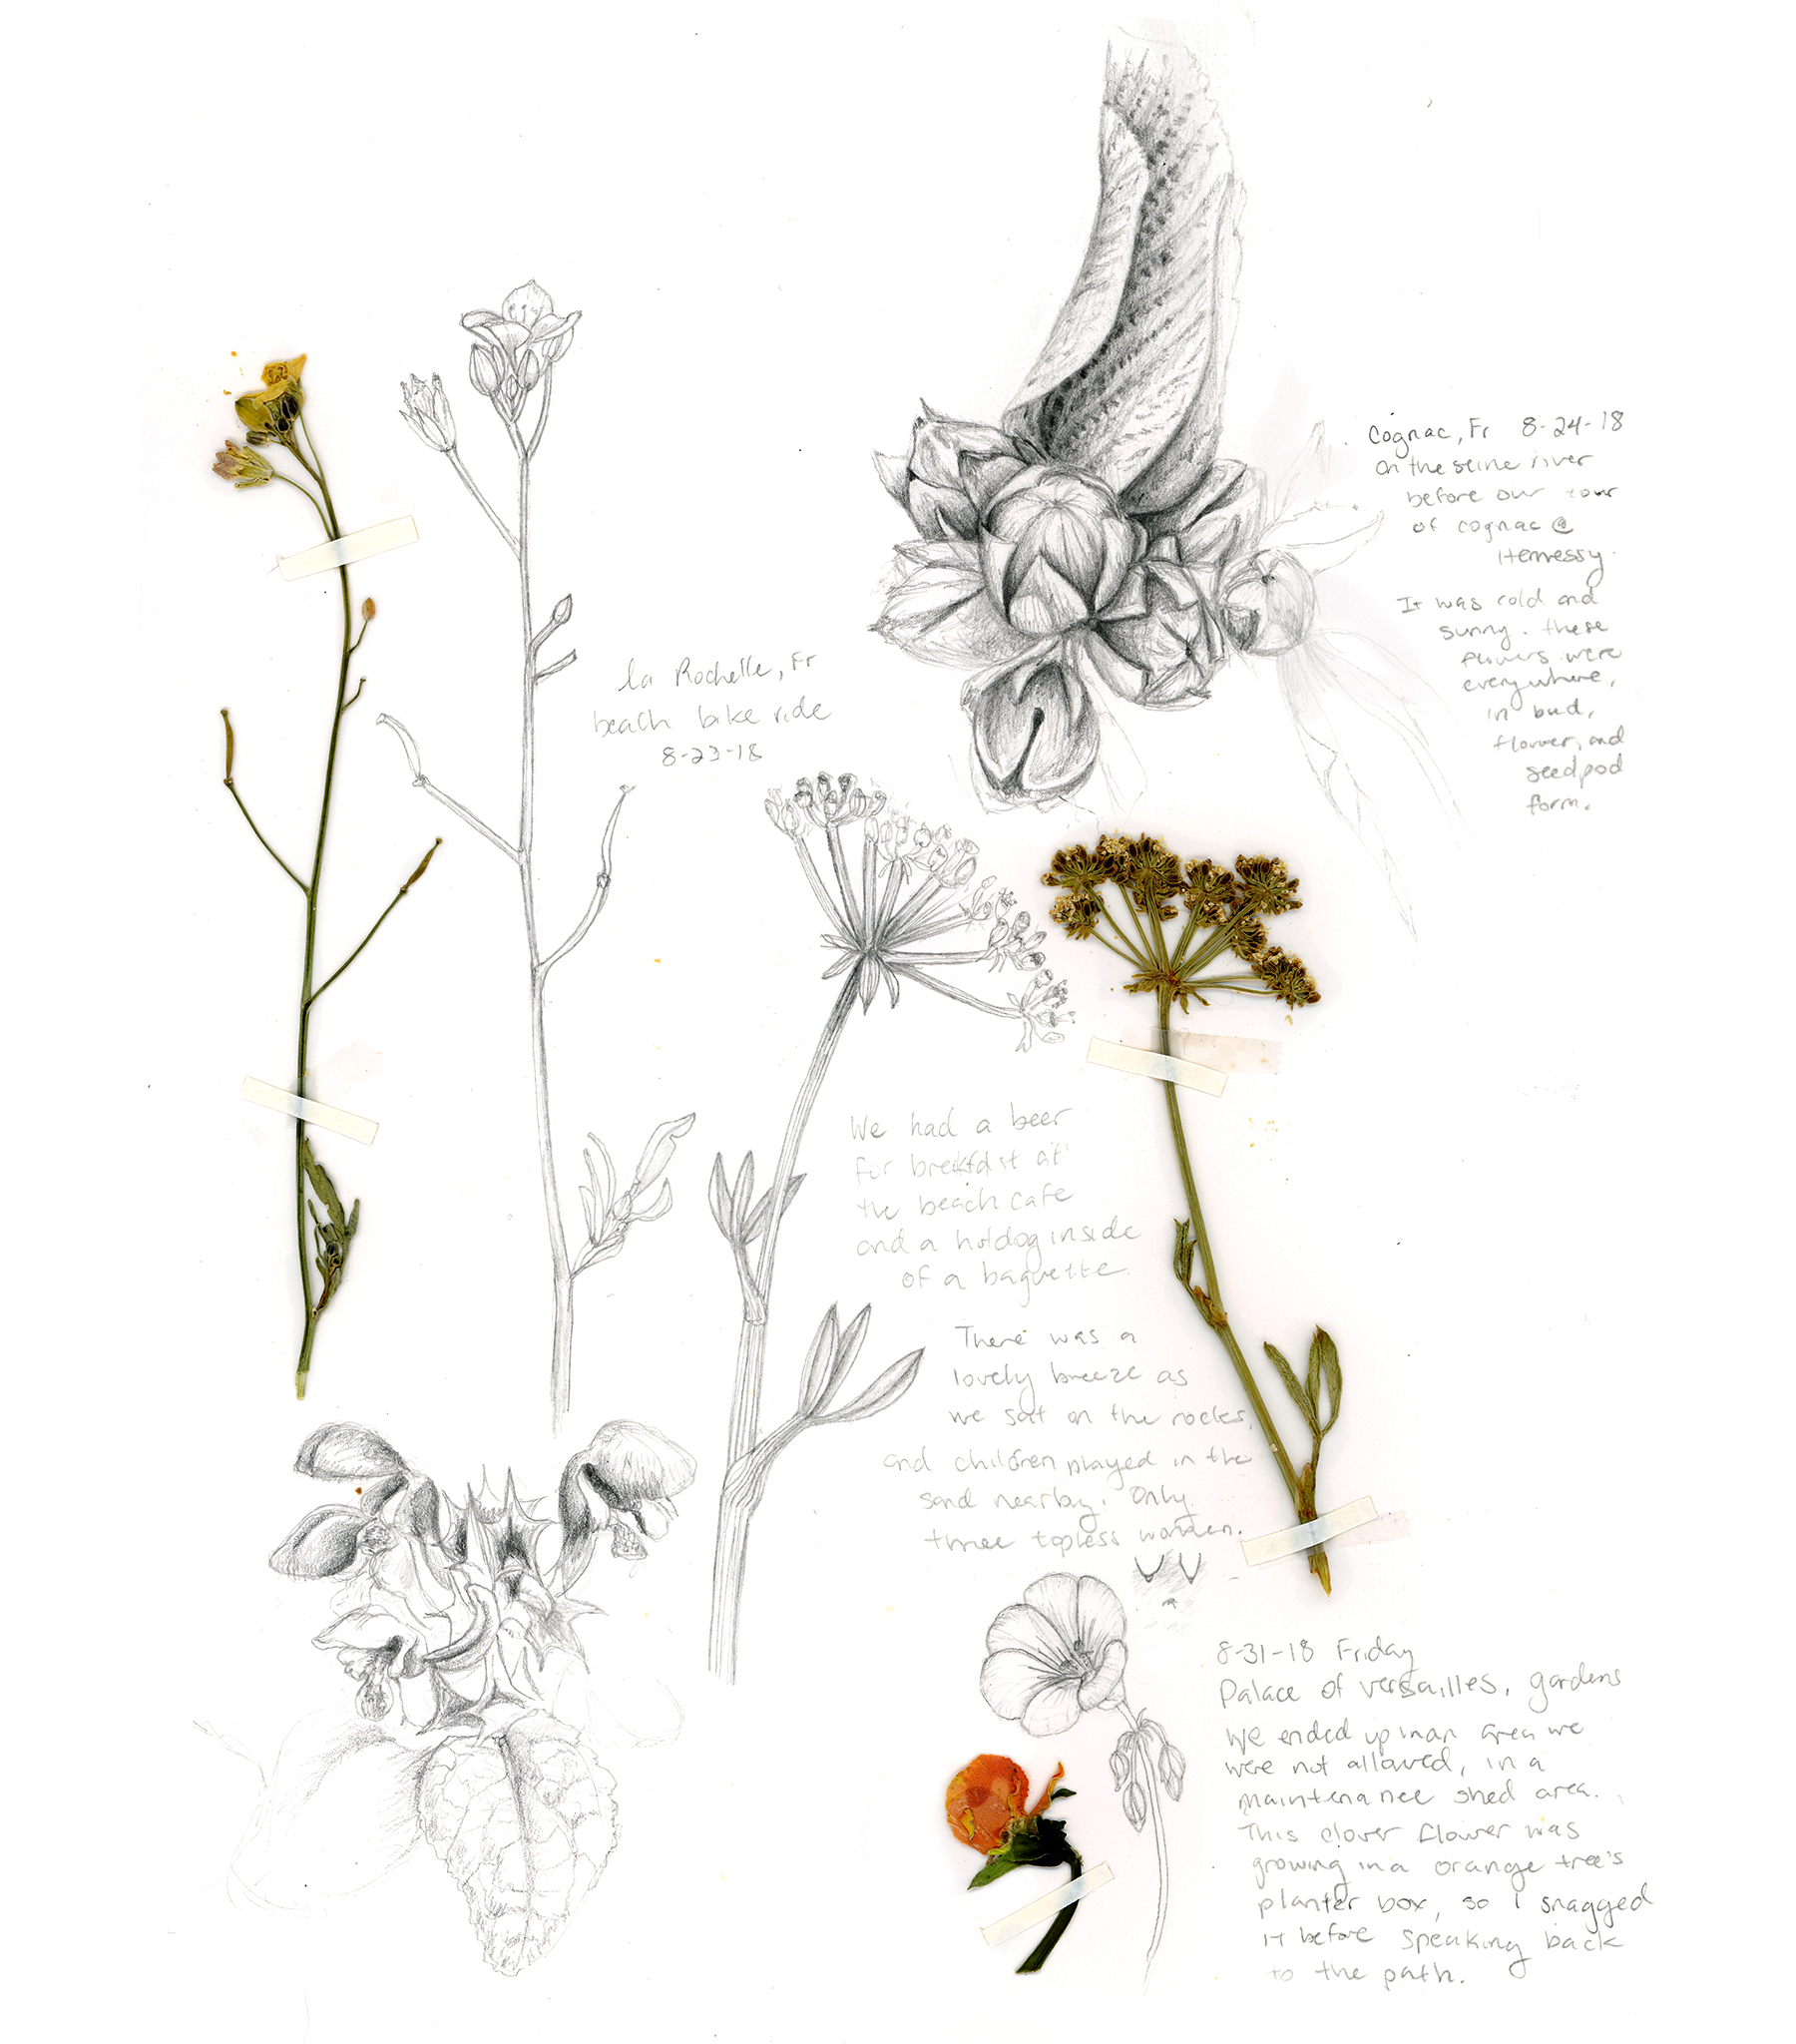 A page in time - Flower pressings and sketches from our honeymoon